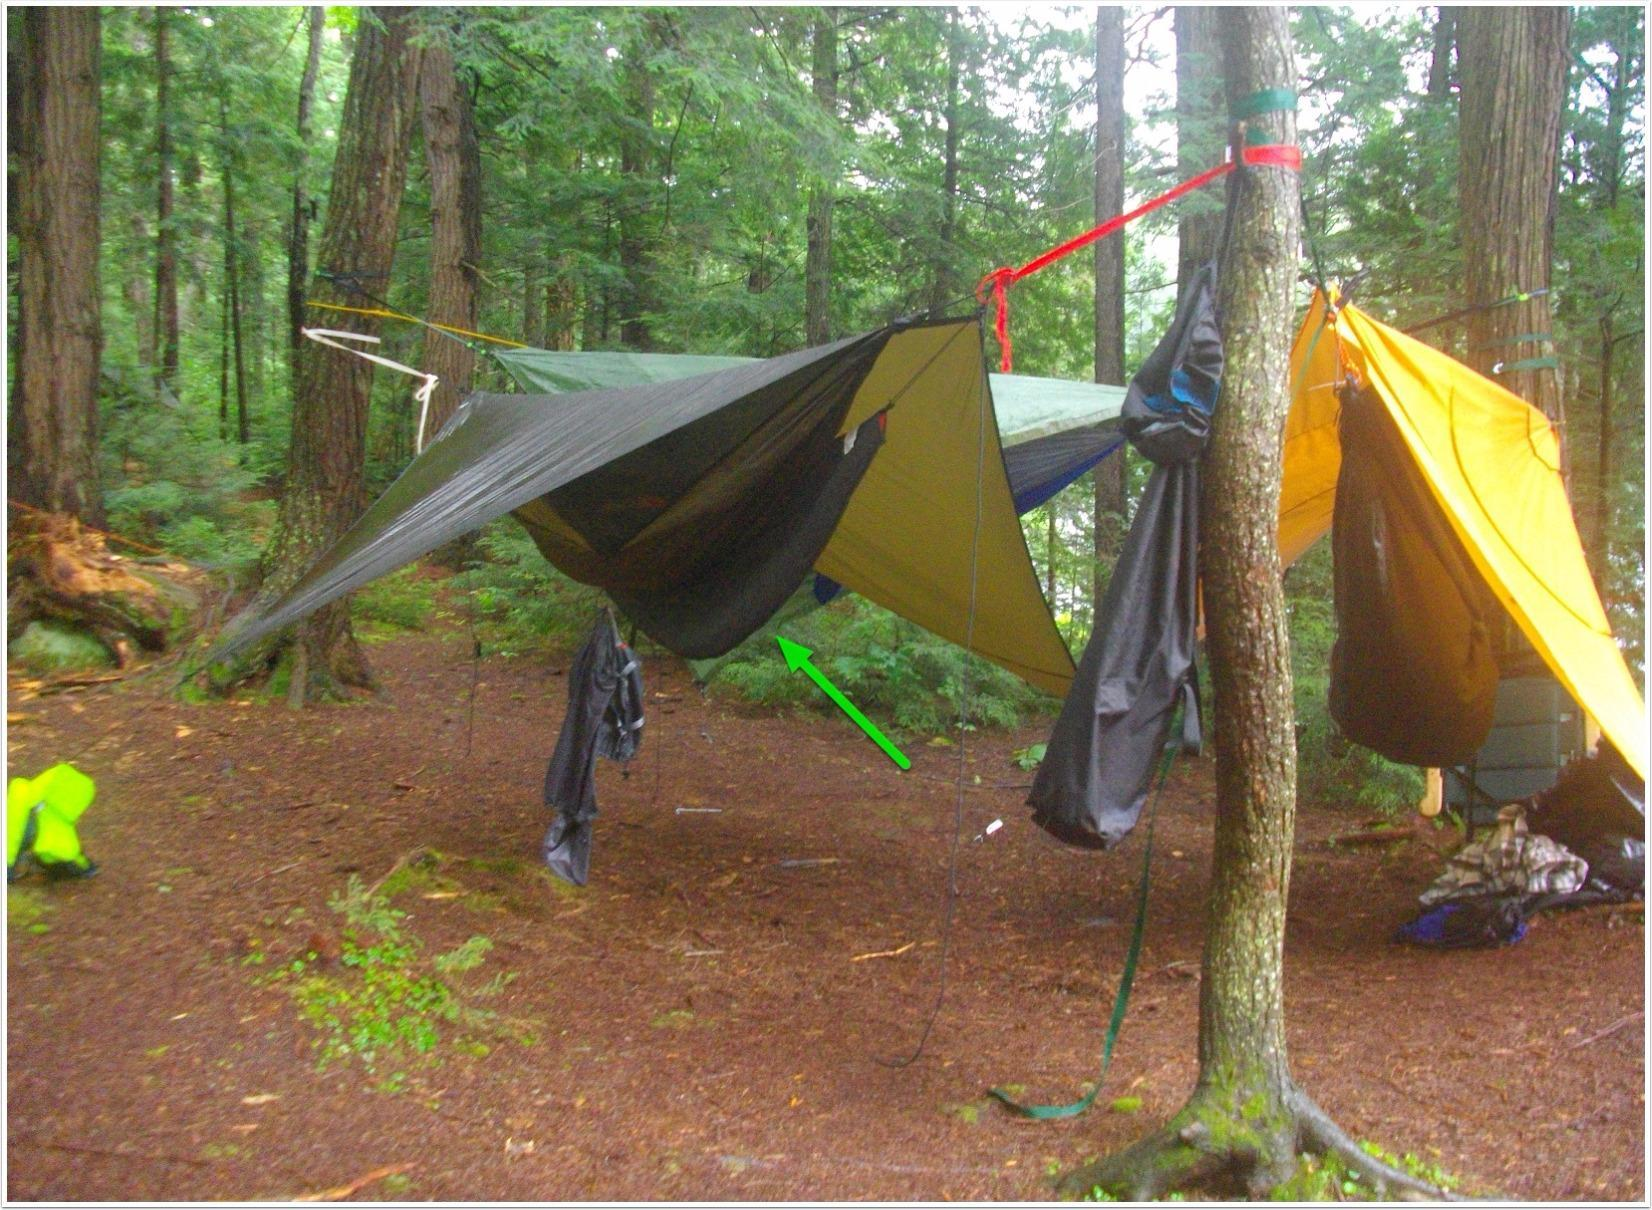 This is a great value-priced under quilt for hammock camping from summer to early fall conditions